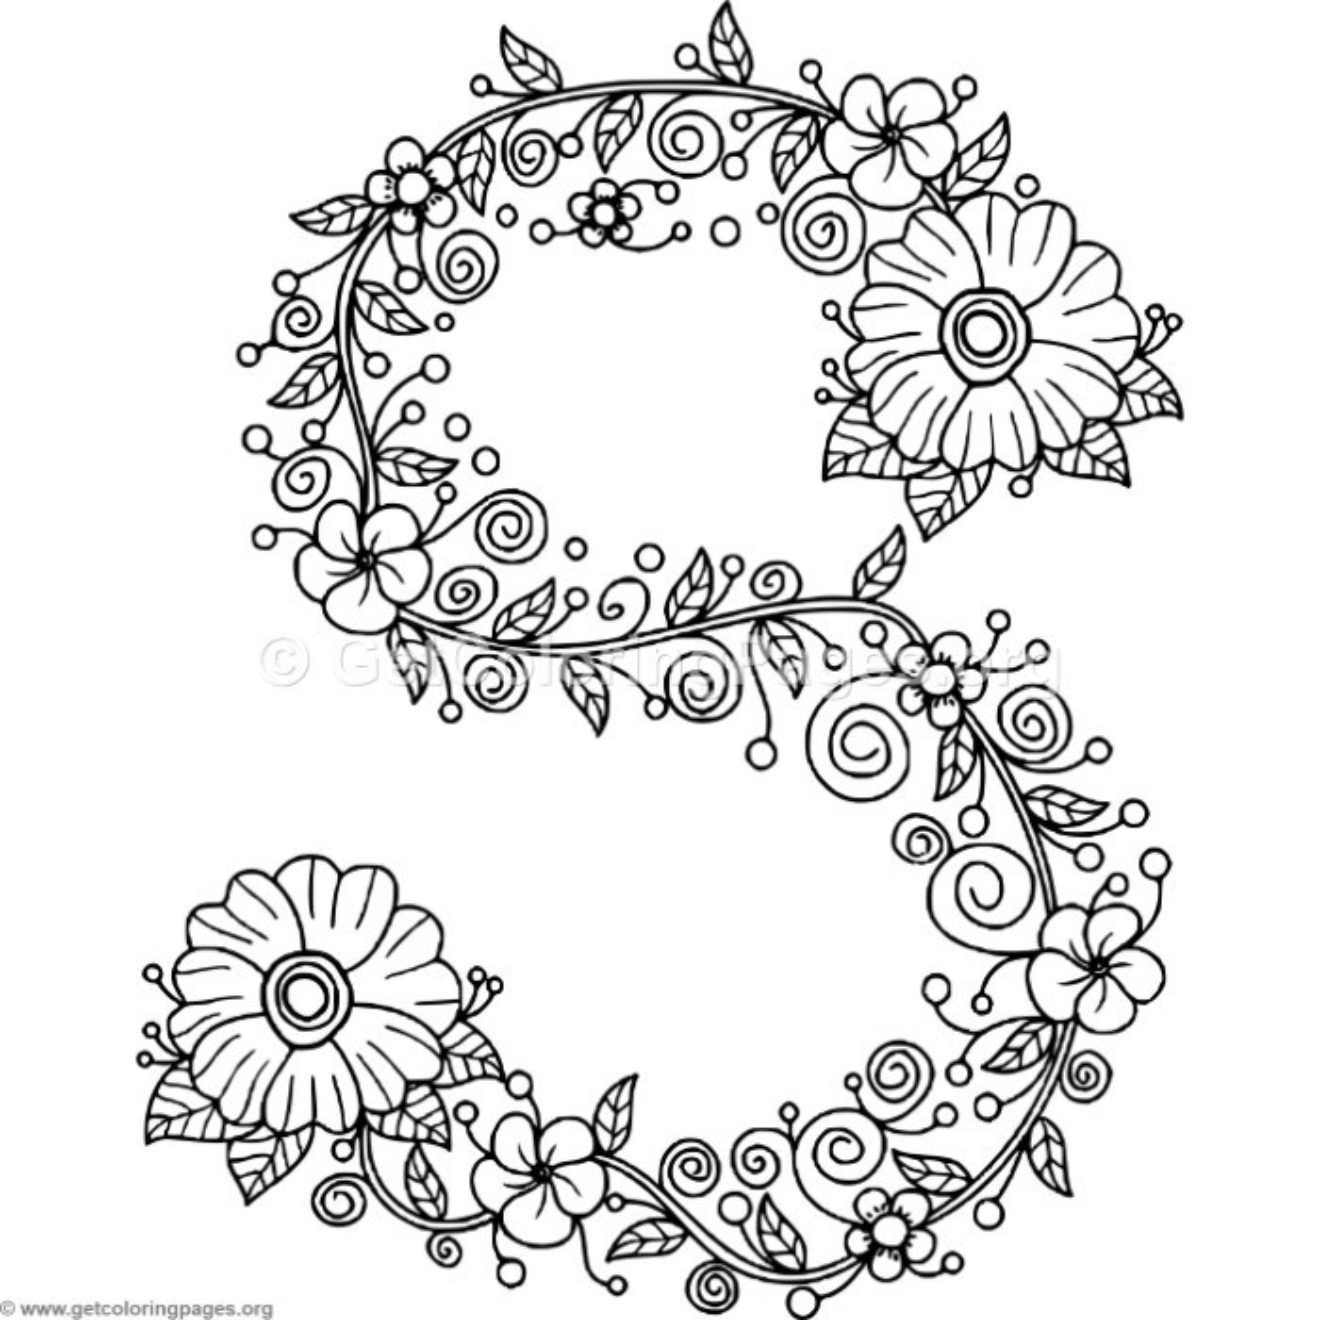 Floral Alphabet Coloring Pages Getcoloringpages Org Flower Coloring Pages Alphabet Coloring Pages Coloring Letters